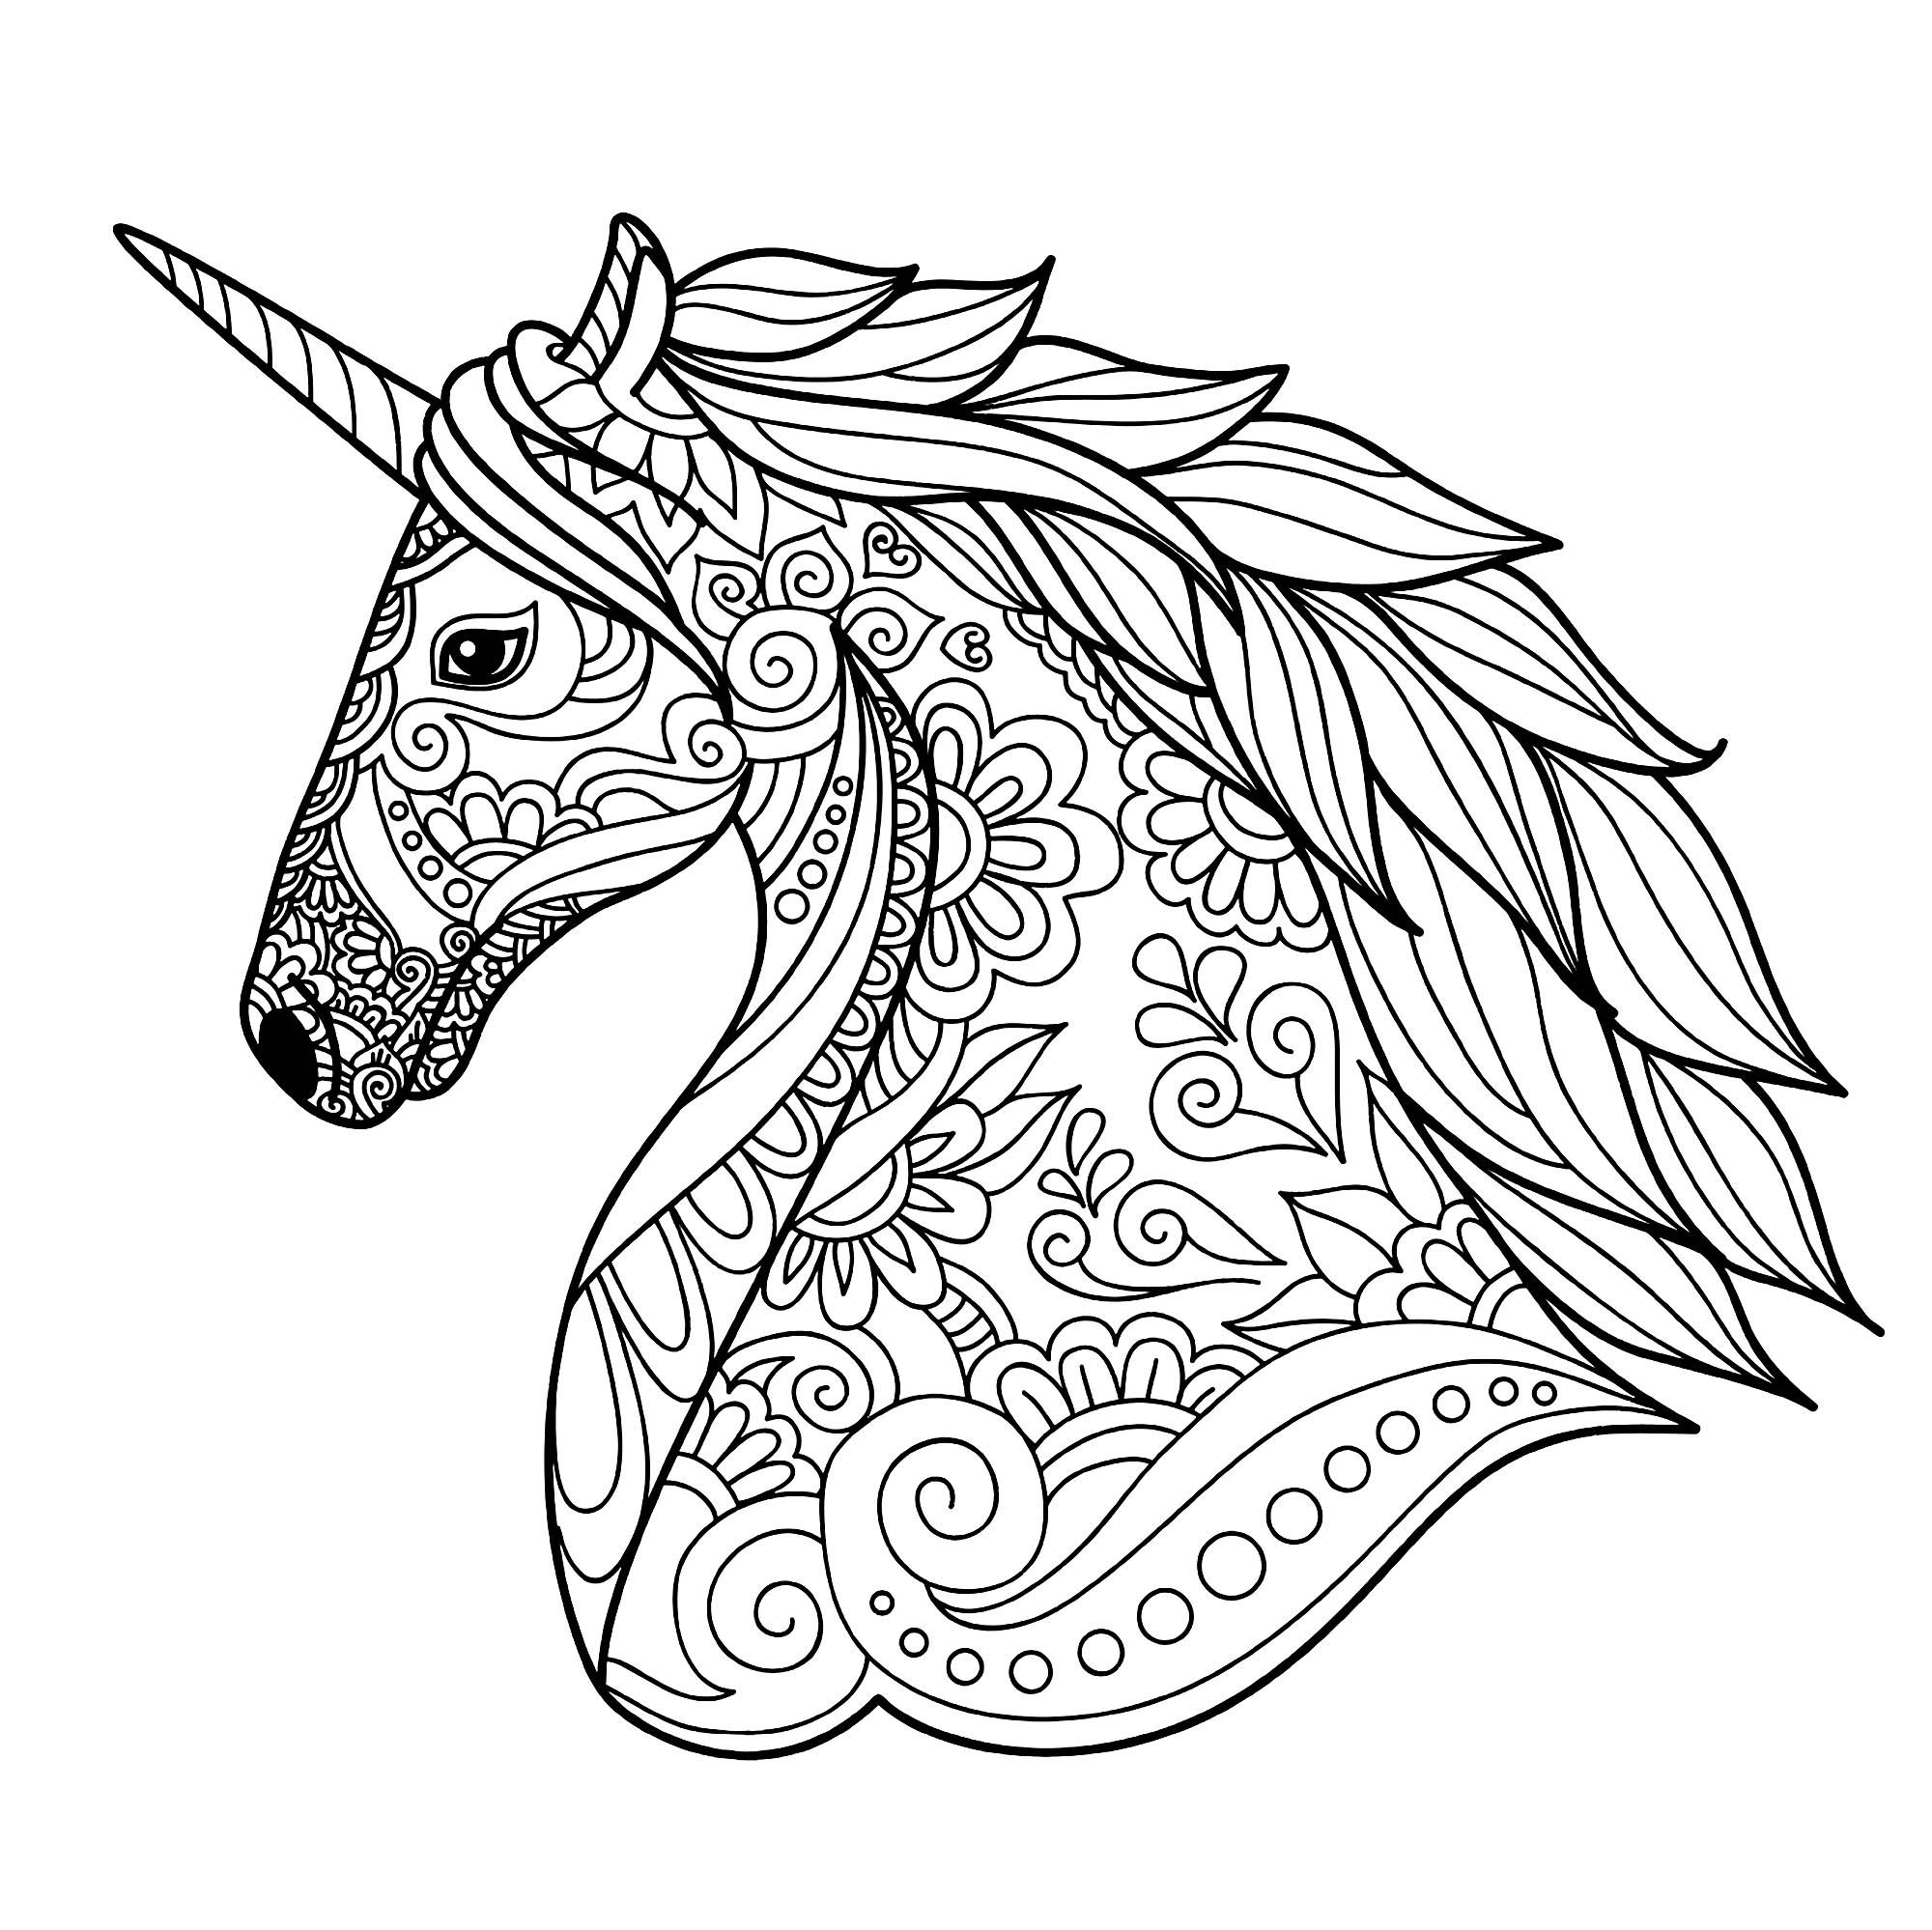 Printable Unicorn Coloring Pages Ideas For Kids Horse Coloring